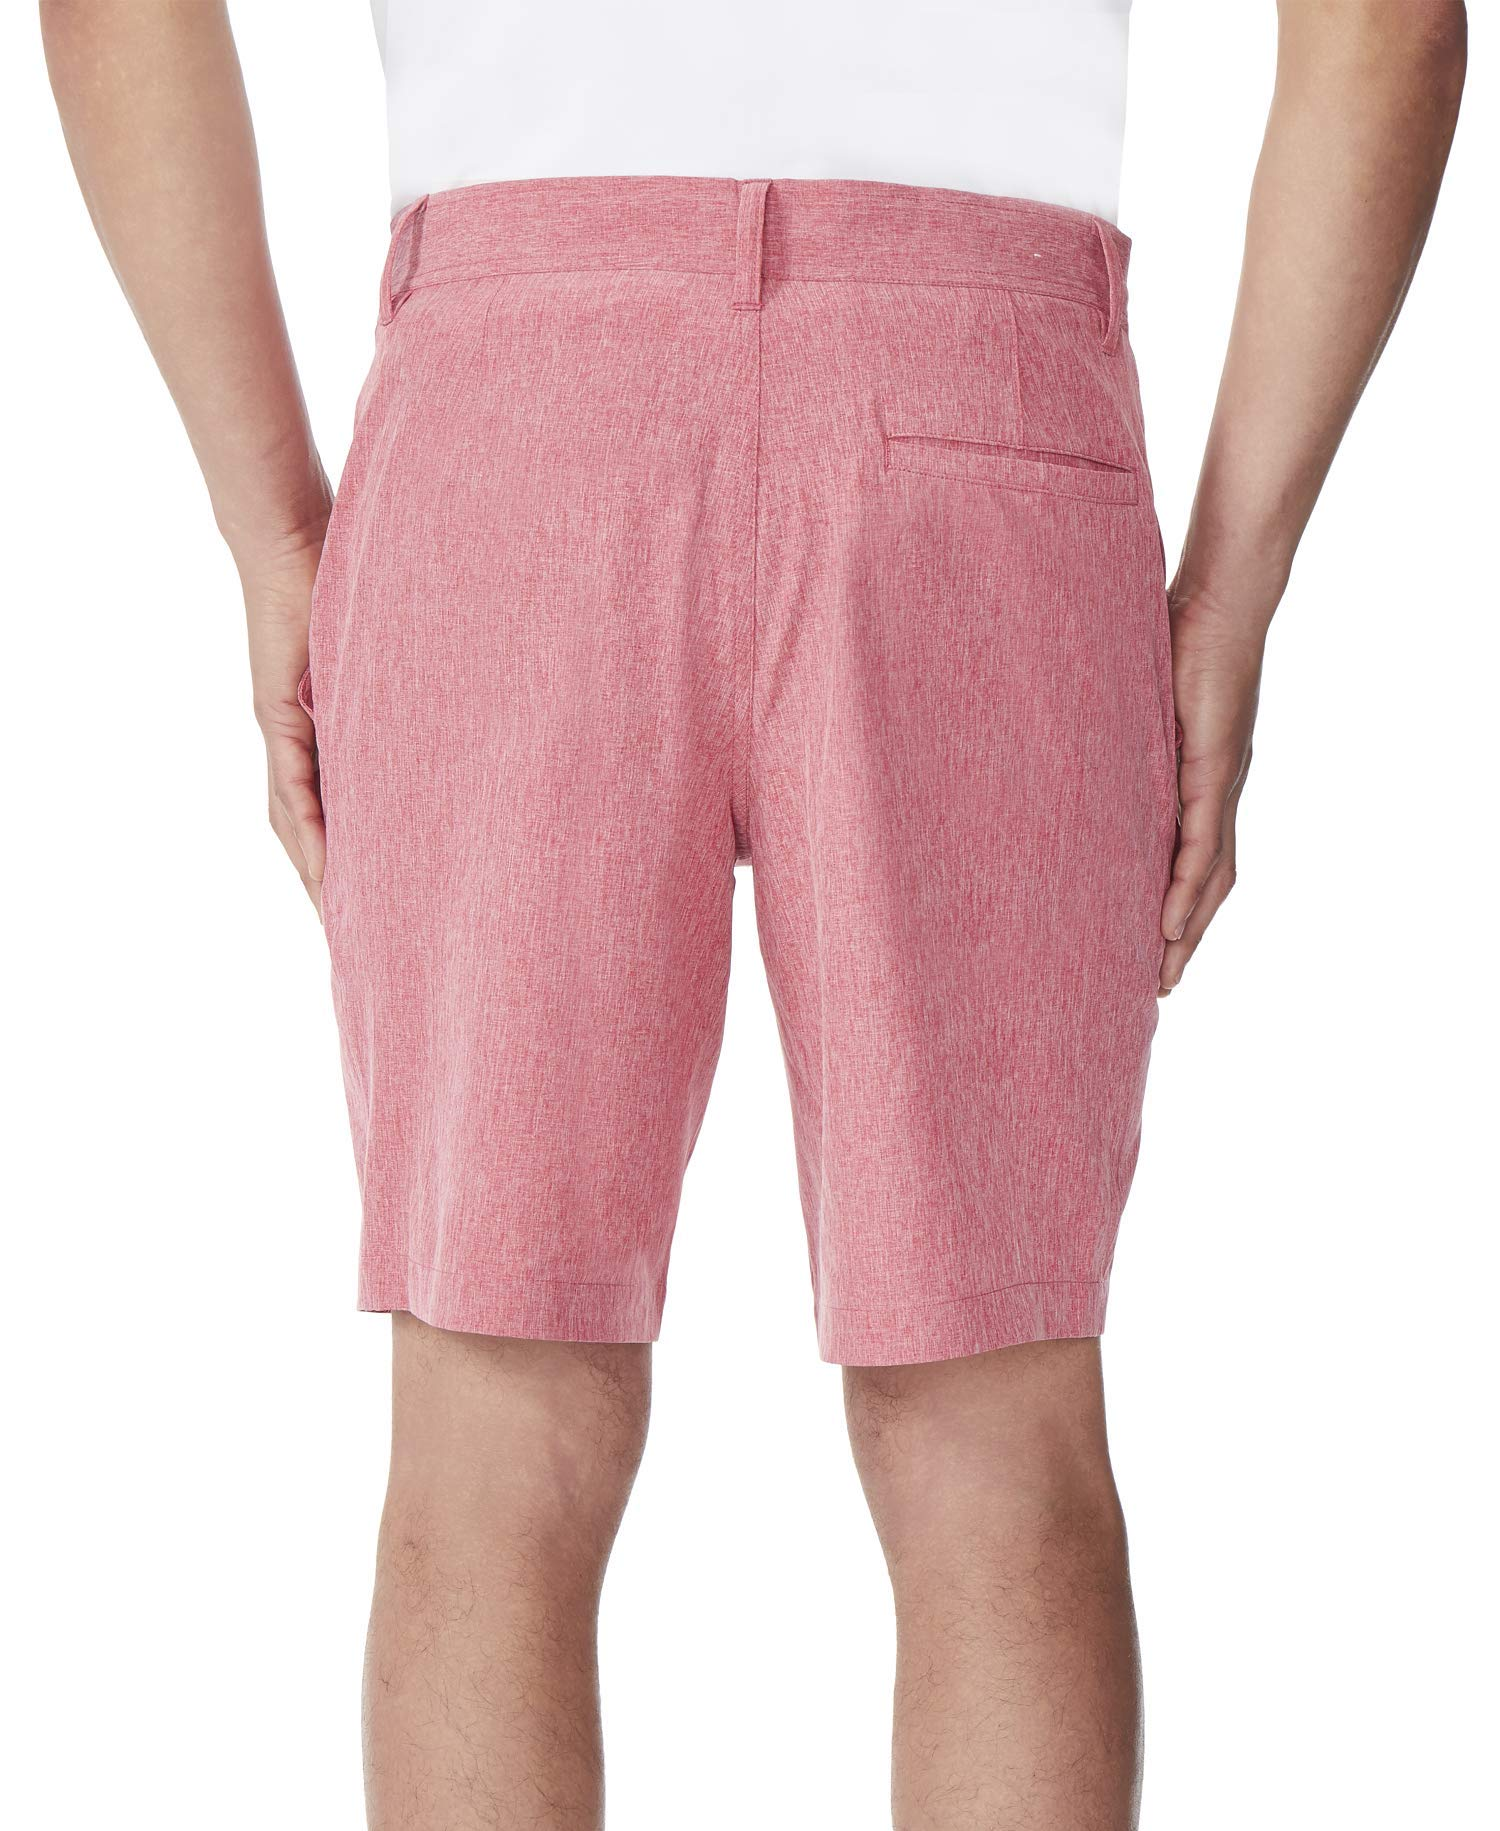 New-32-Degrees-Mens-Shorts-Solid-Bright-Red-Size-38-Stretch-Performance-39-313 thumbnail 3